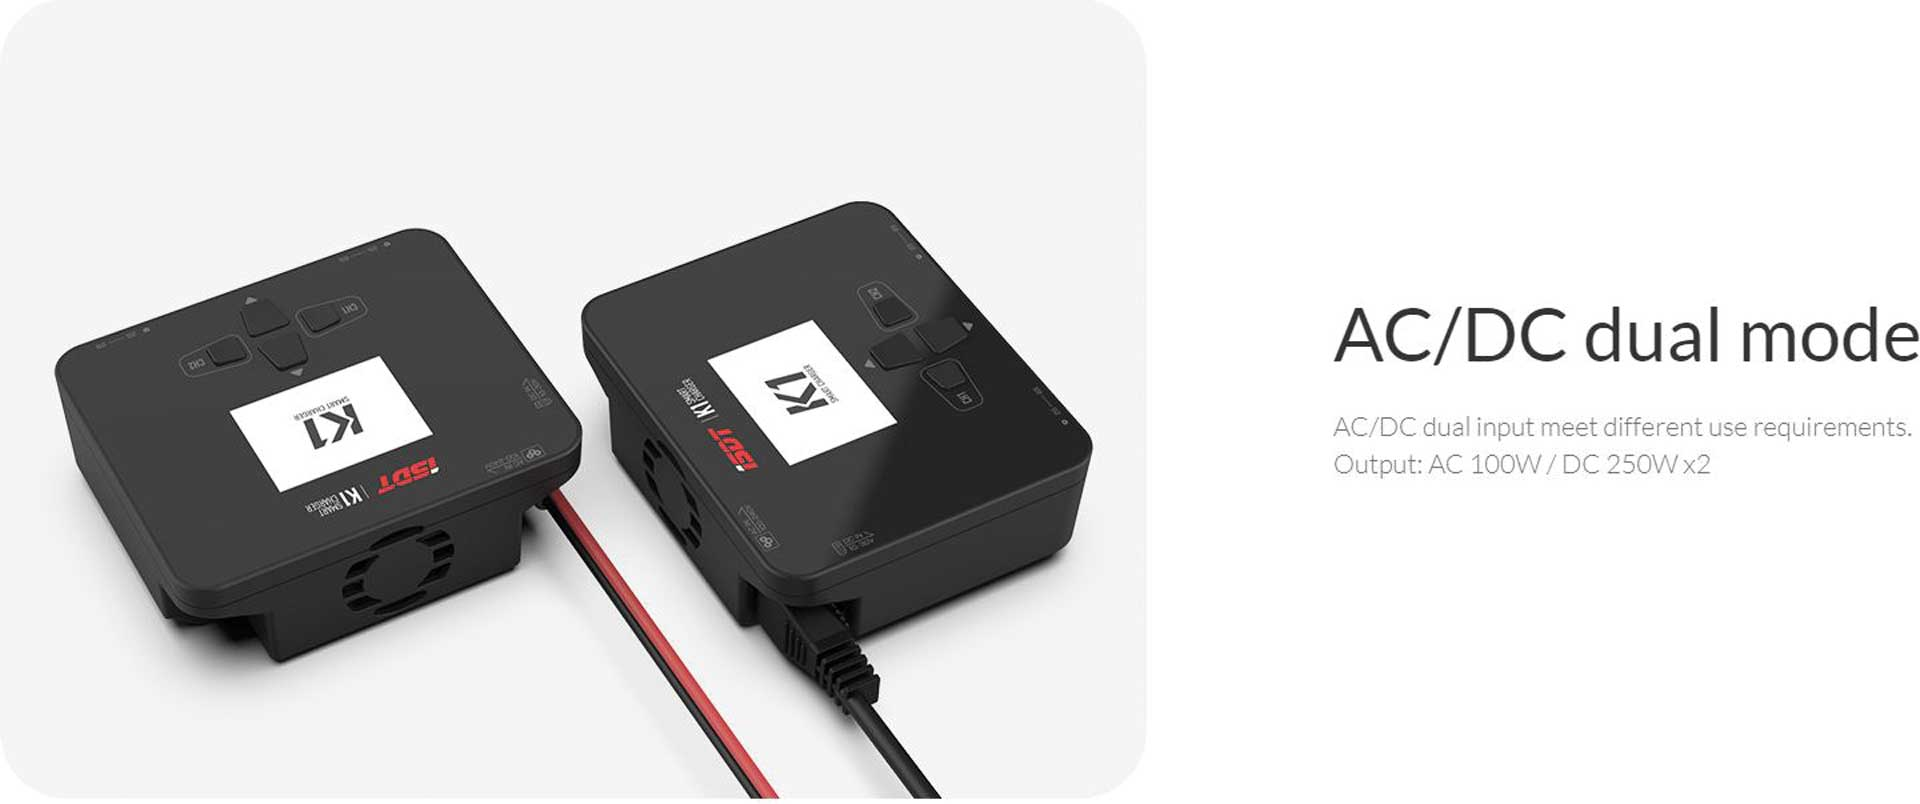 ISDT K1 Dual Charger AC 100W / DC 250Wx2 Ladegerät